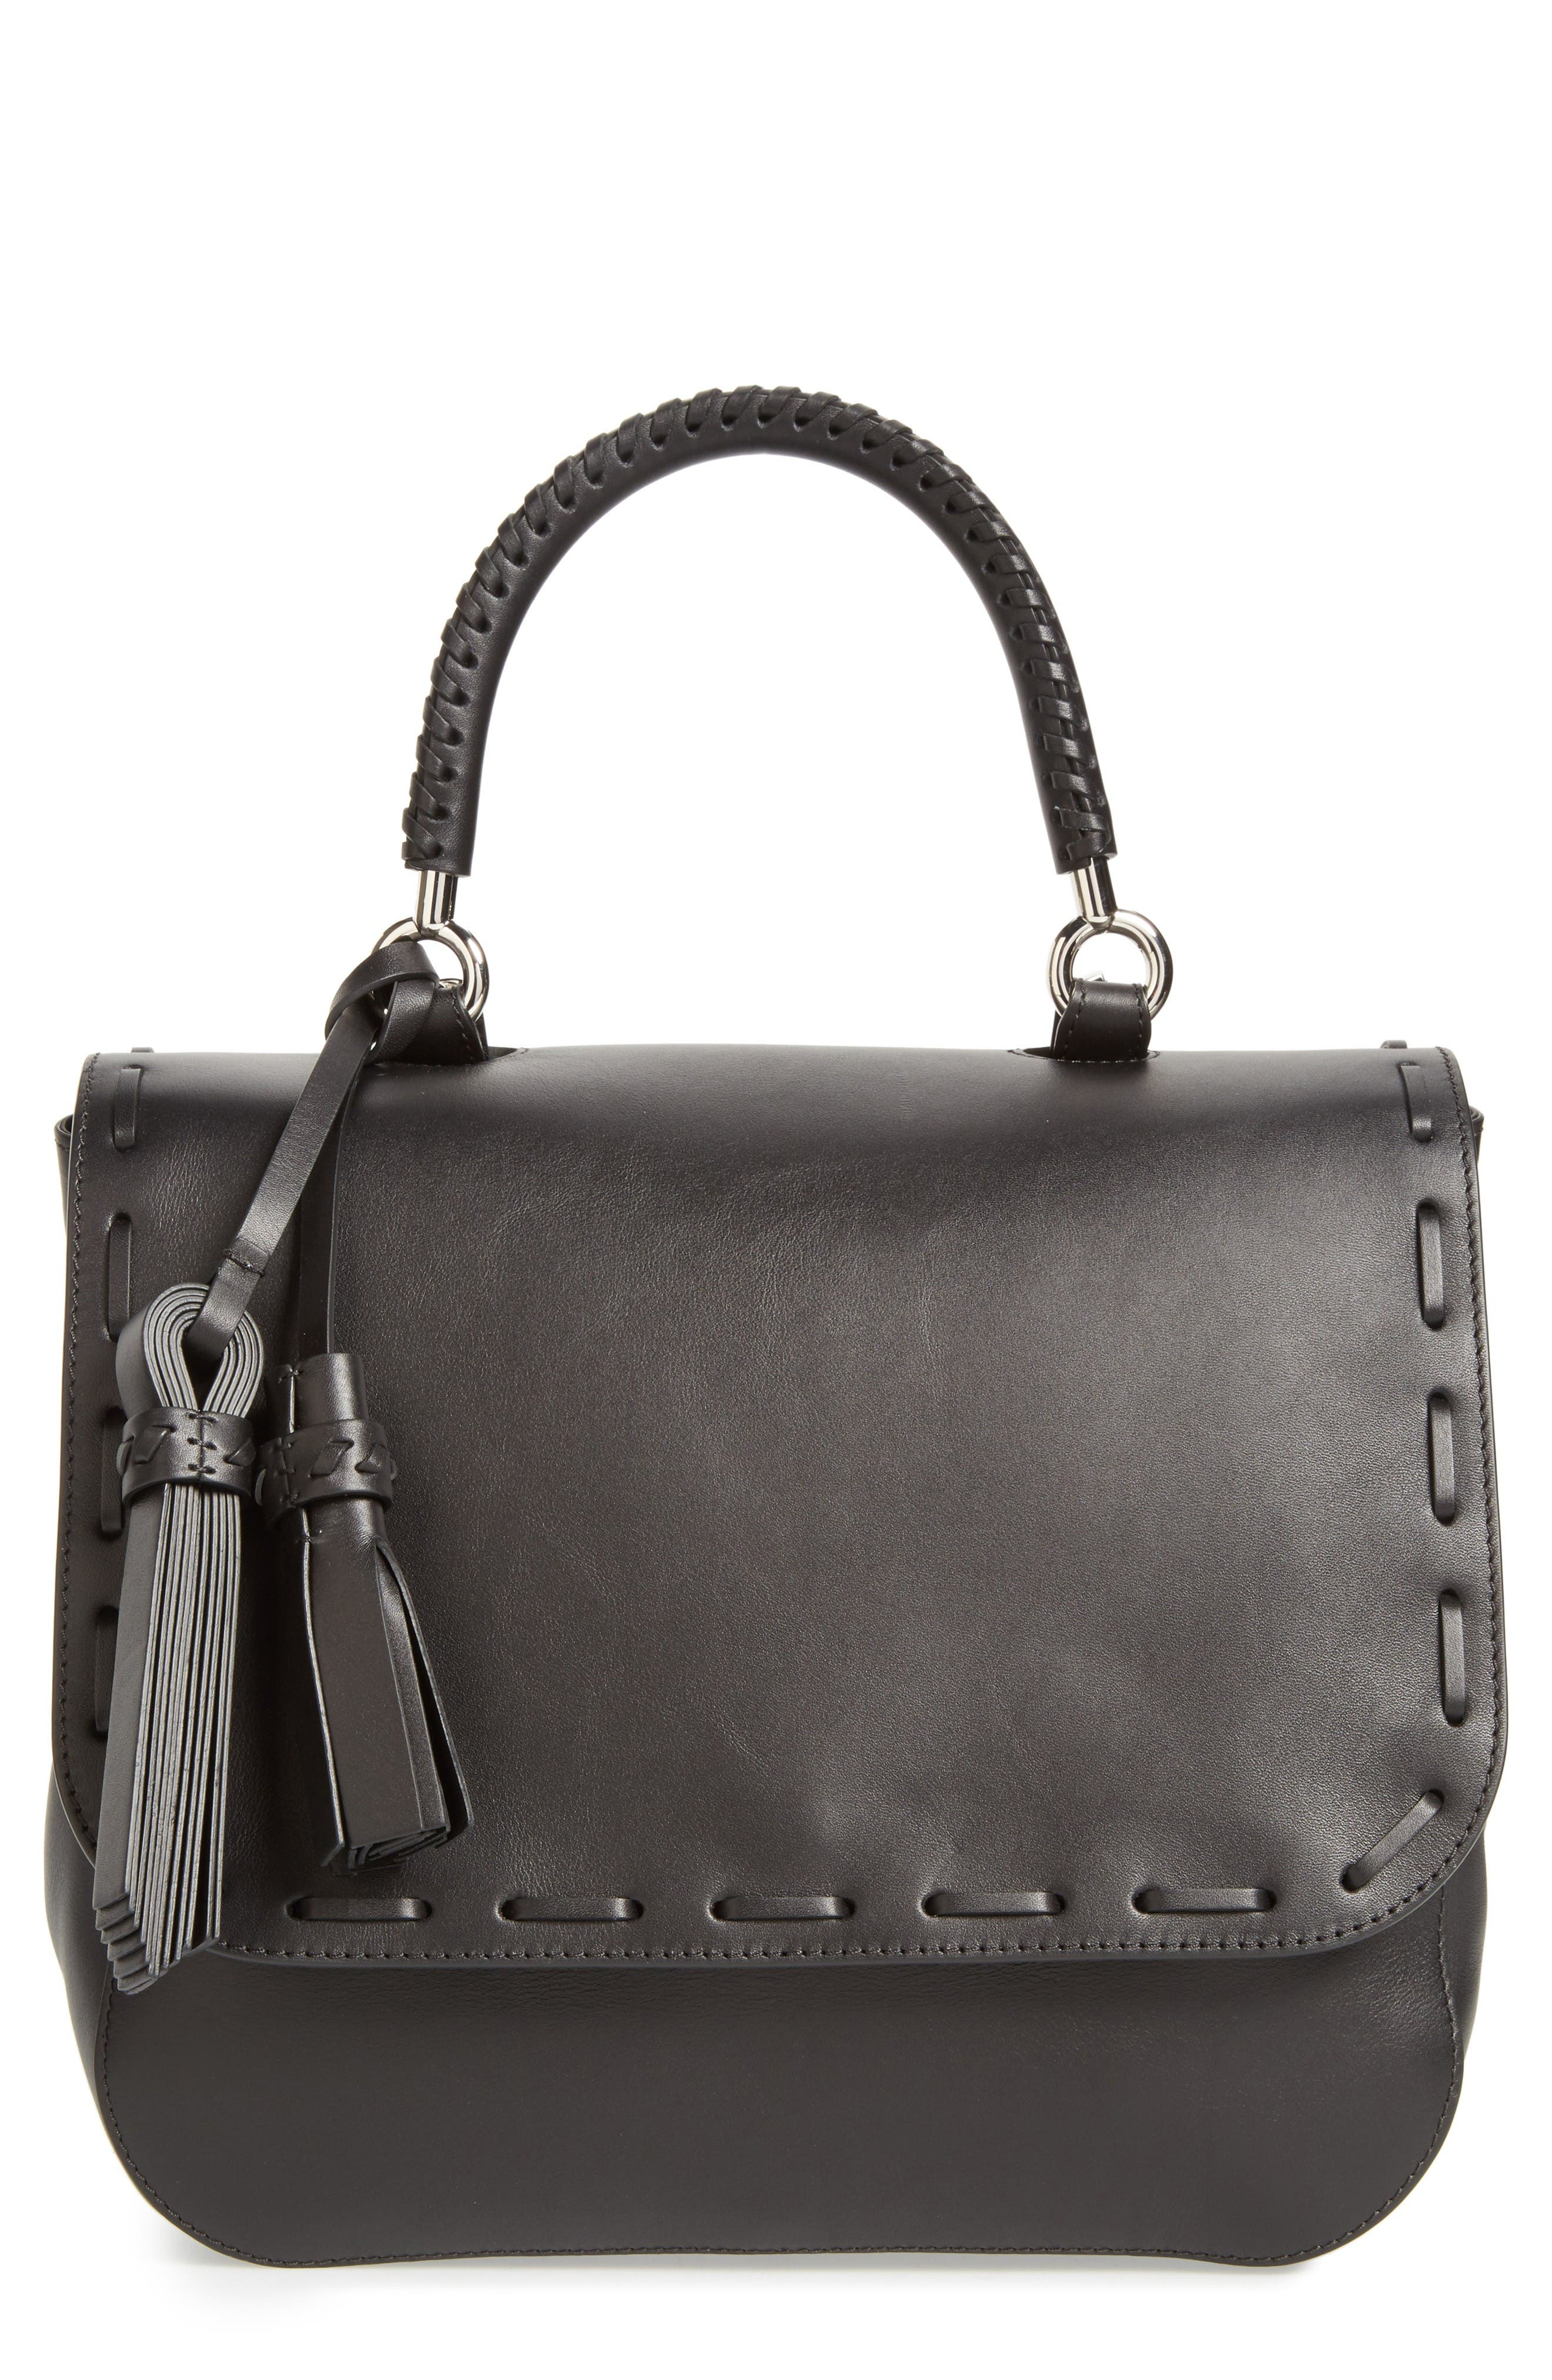 Max Mara BoBag Leather Satchel